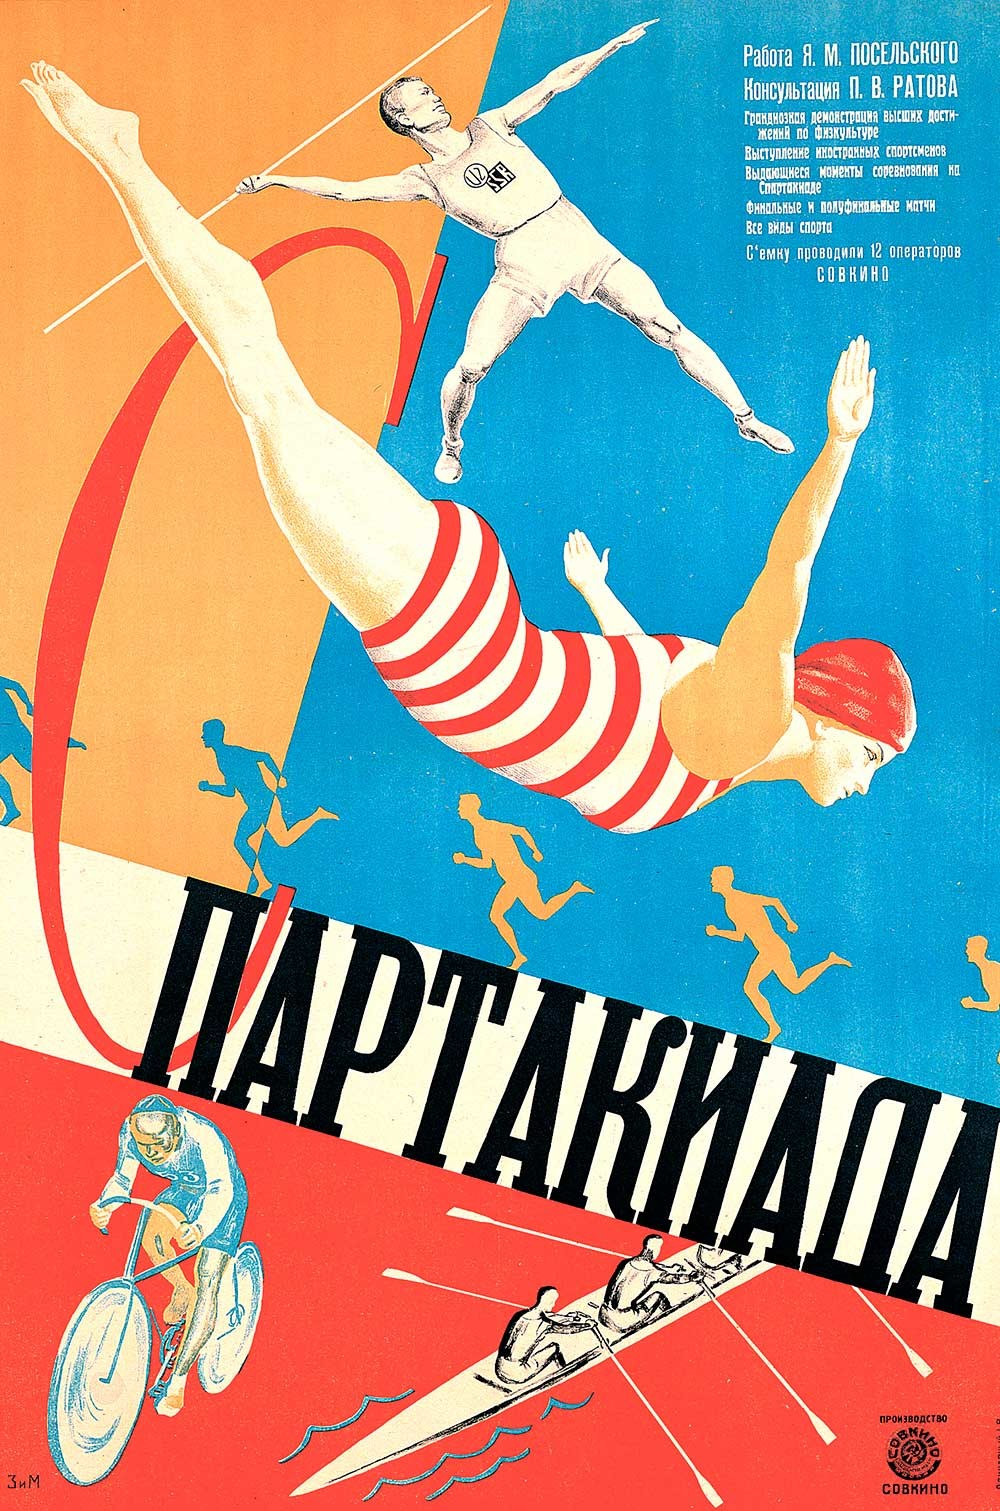 ZIM, Film poster for Spartakiada, 1927